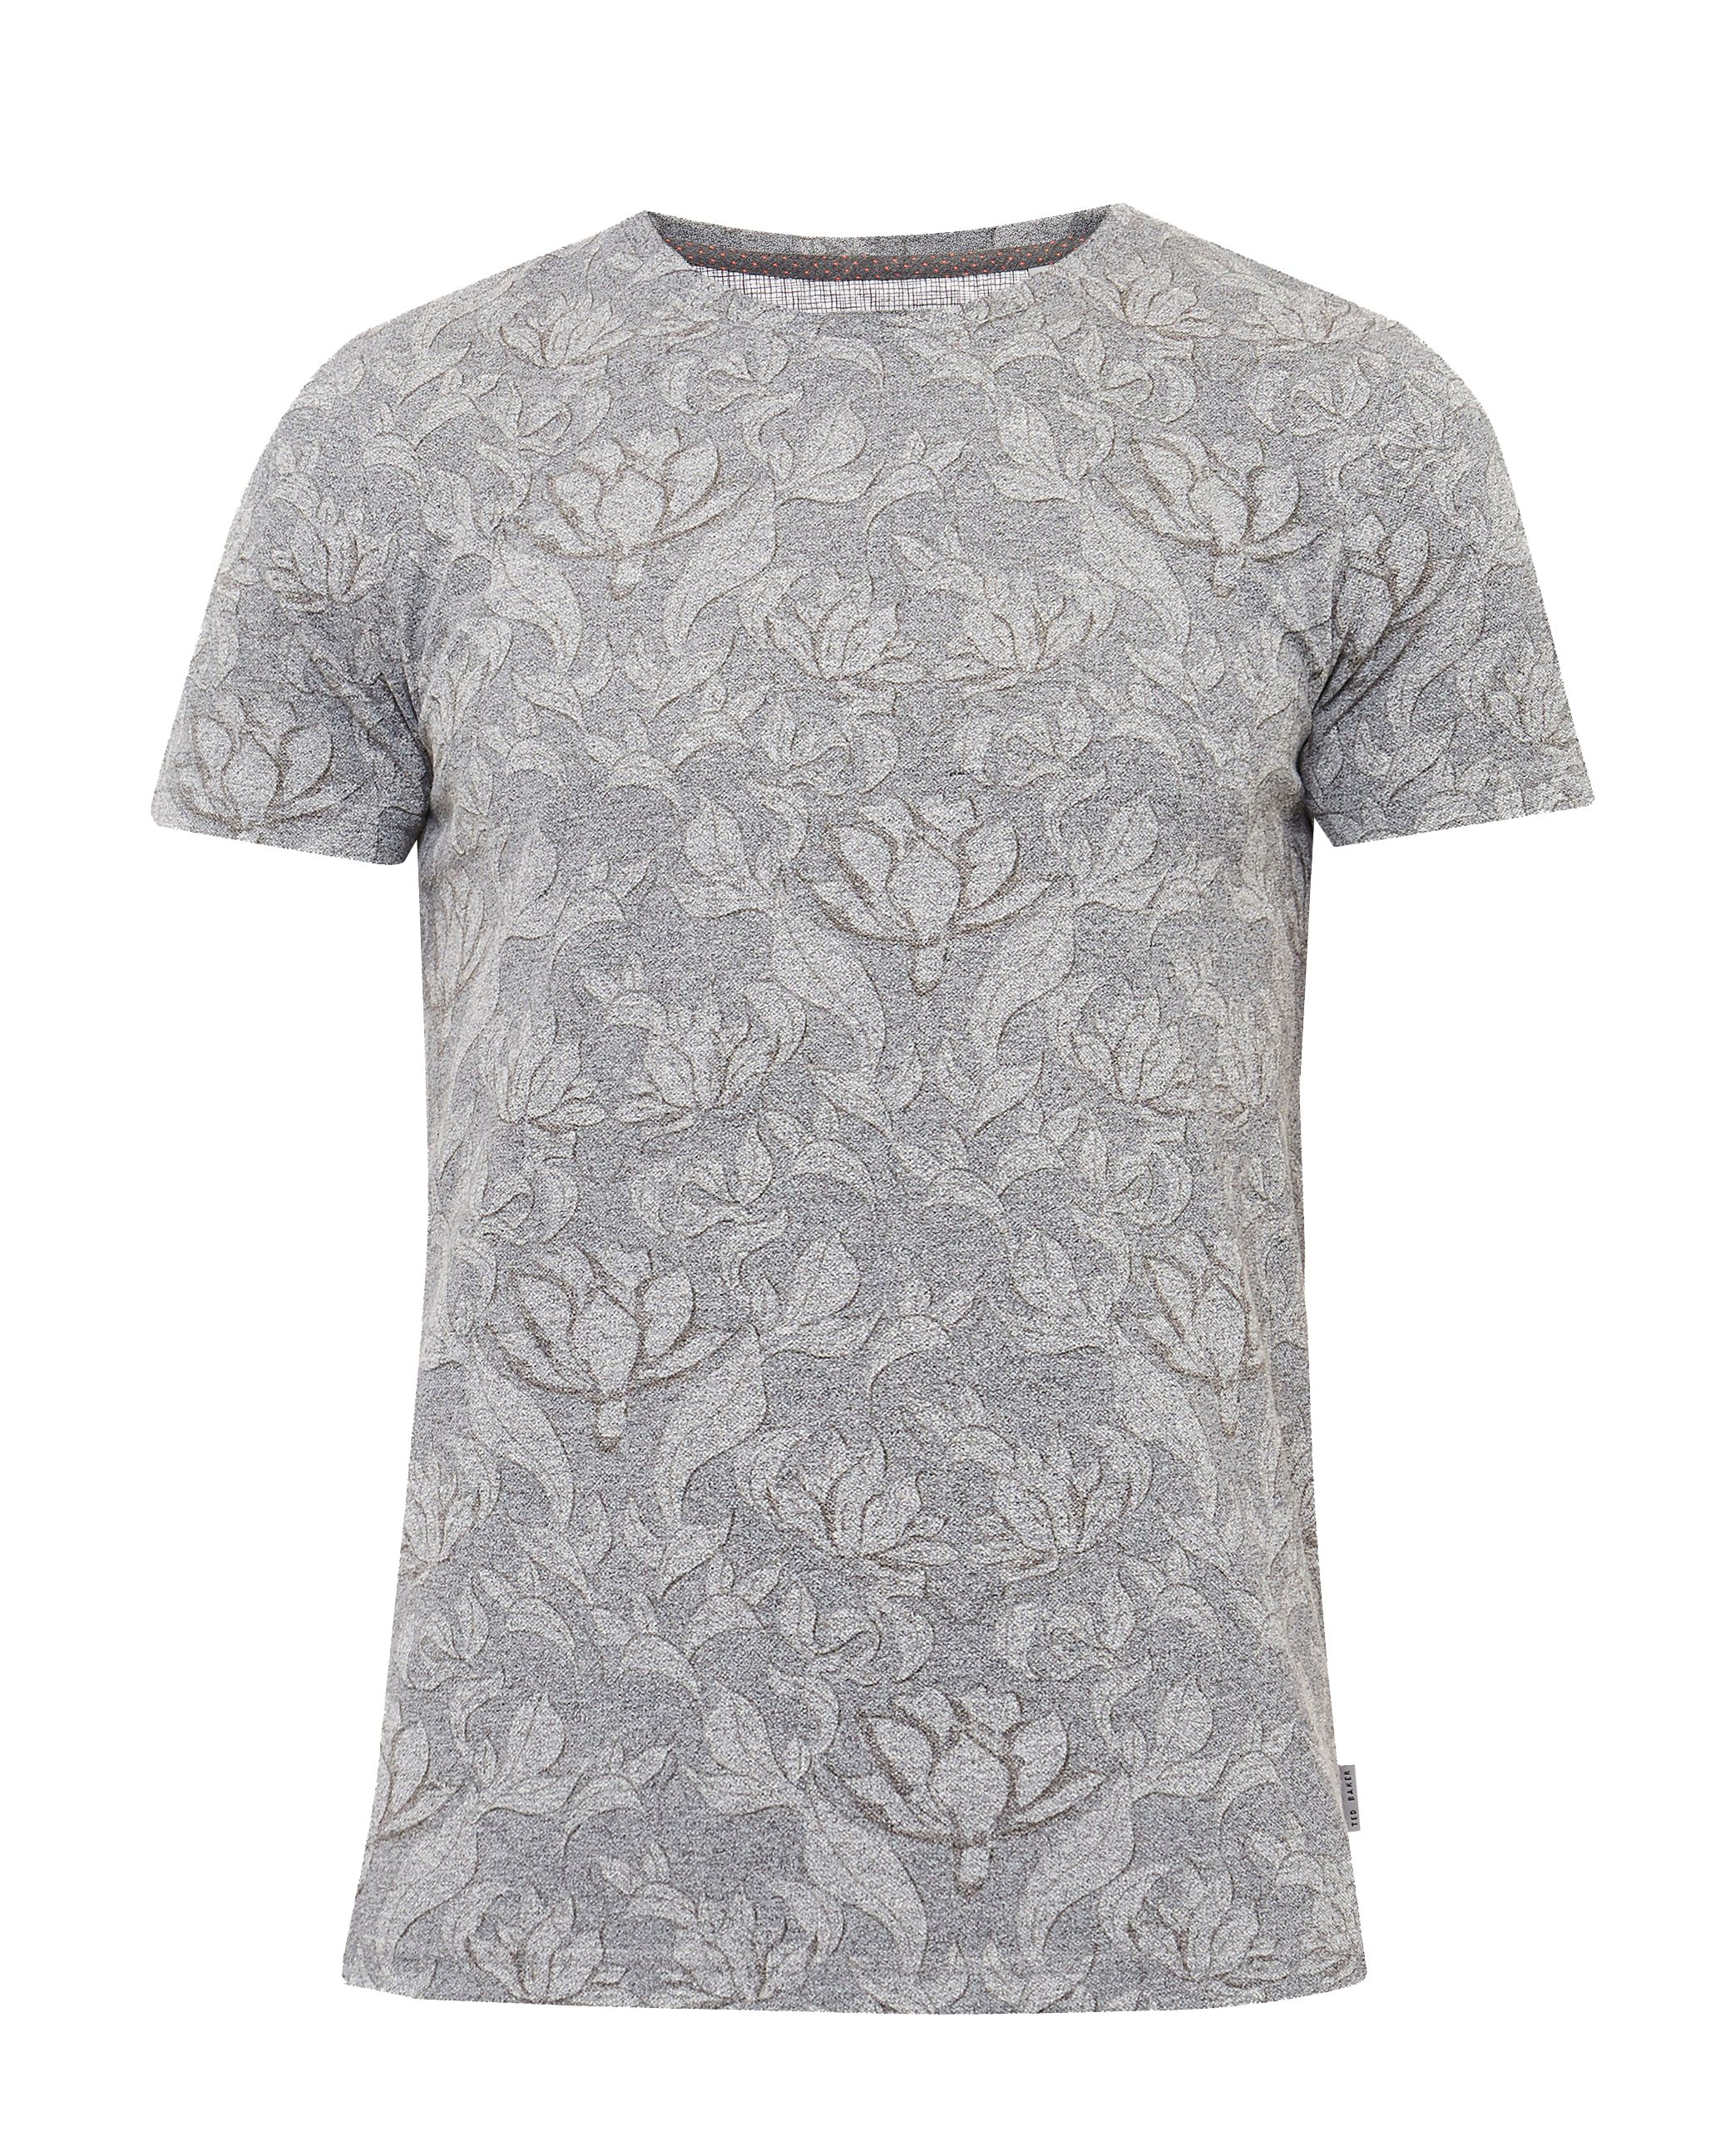 Mens Ted Baker Hapyval Floral Print Cotton Blend TShirt Grey